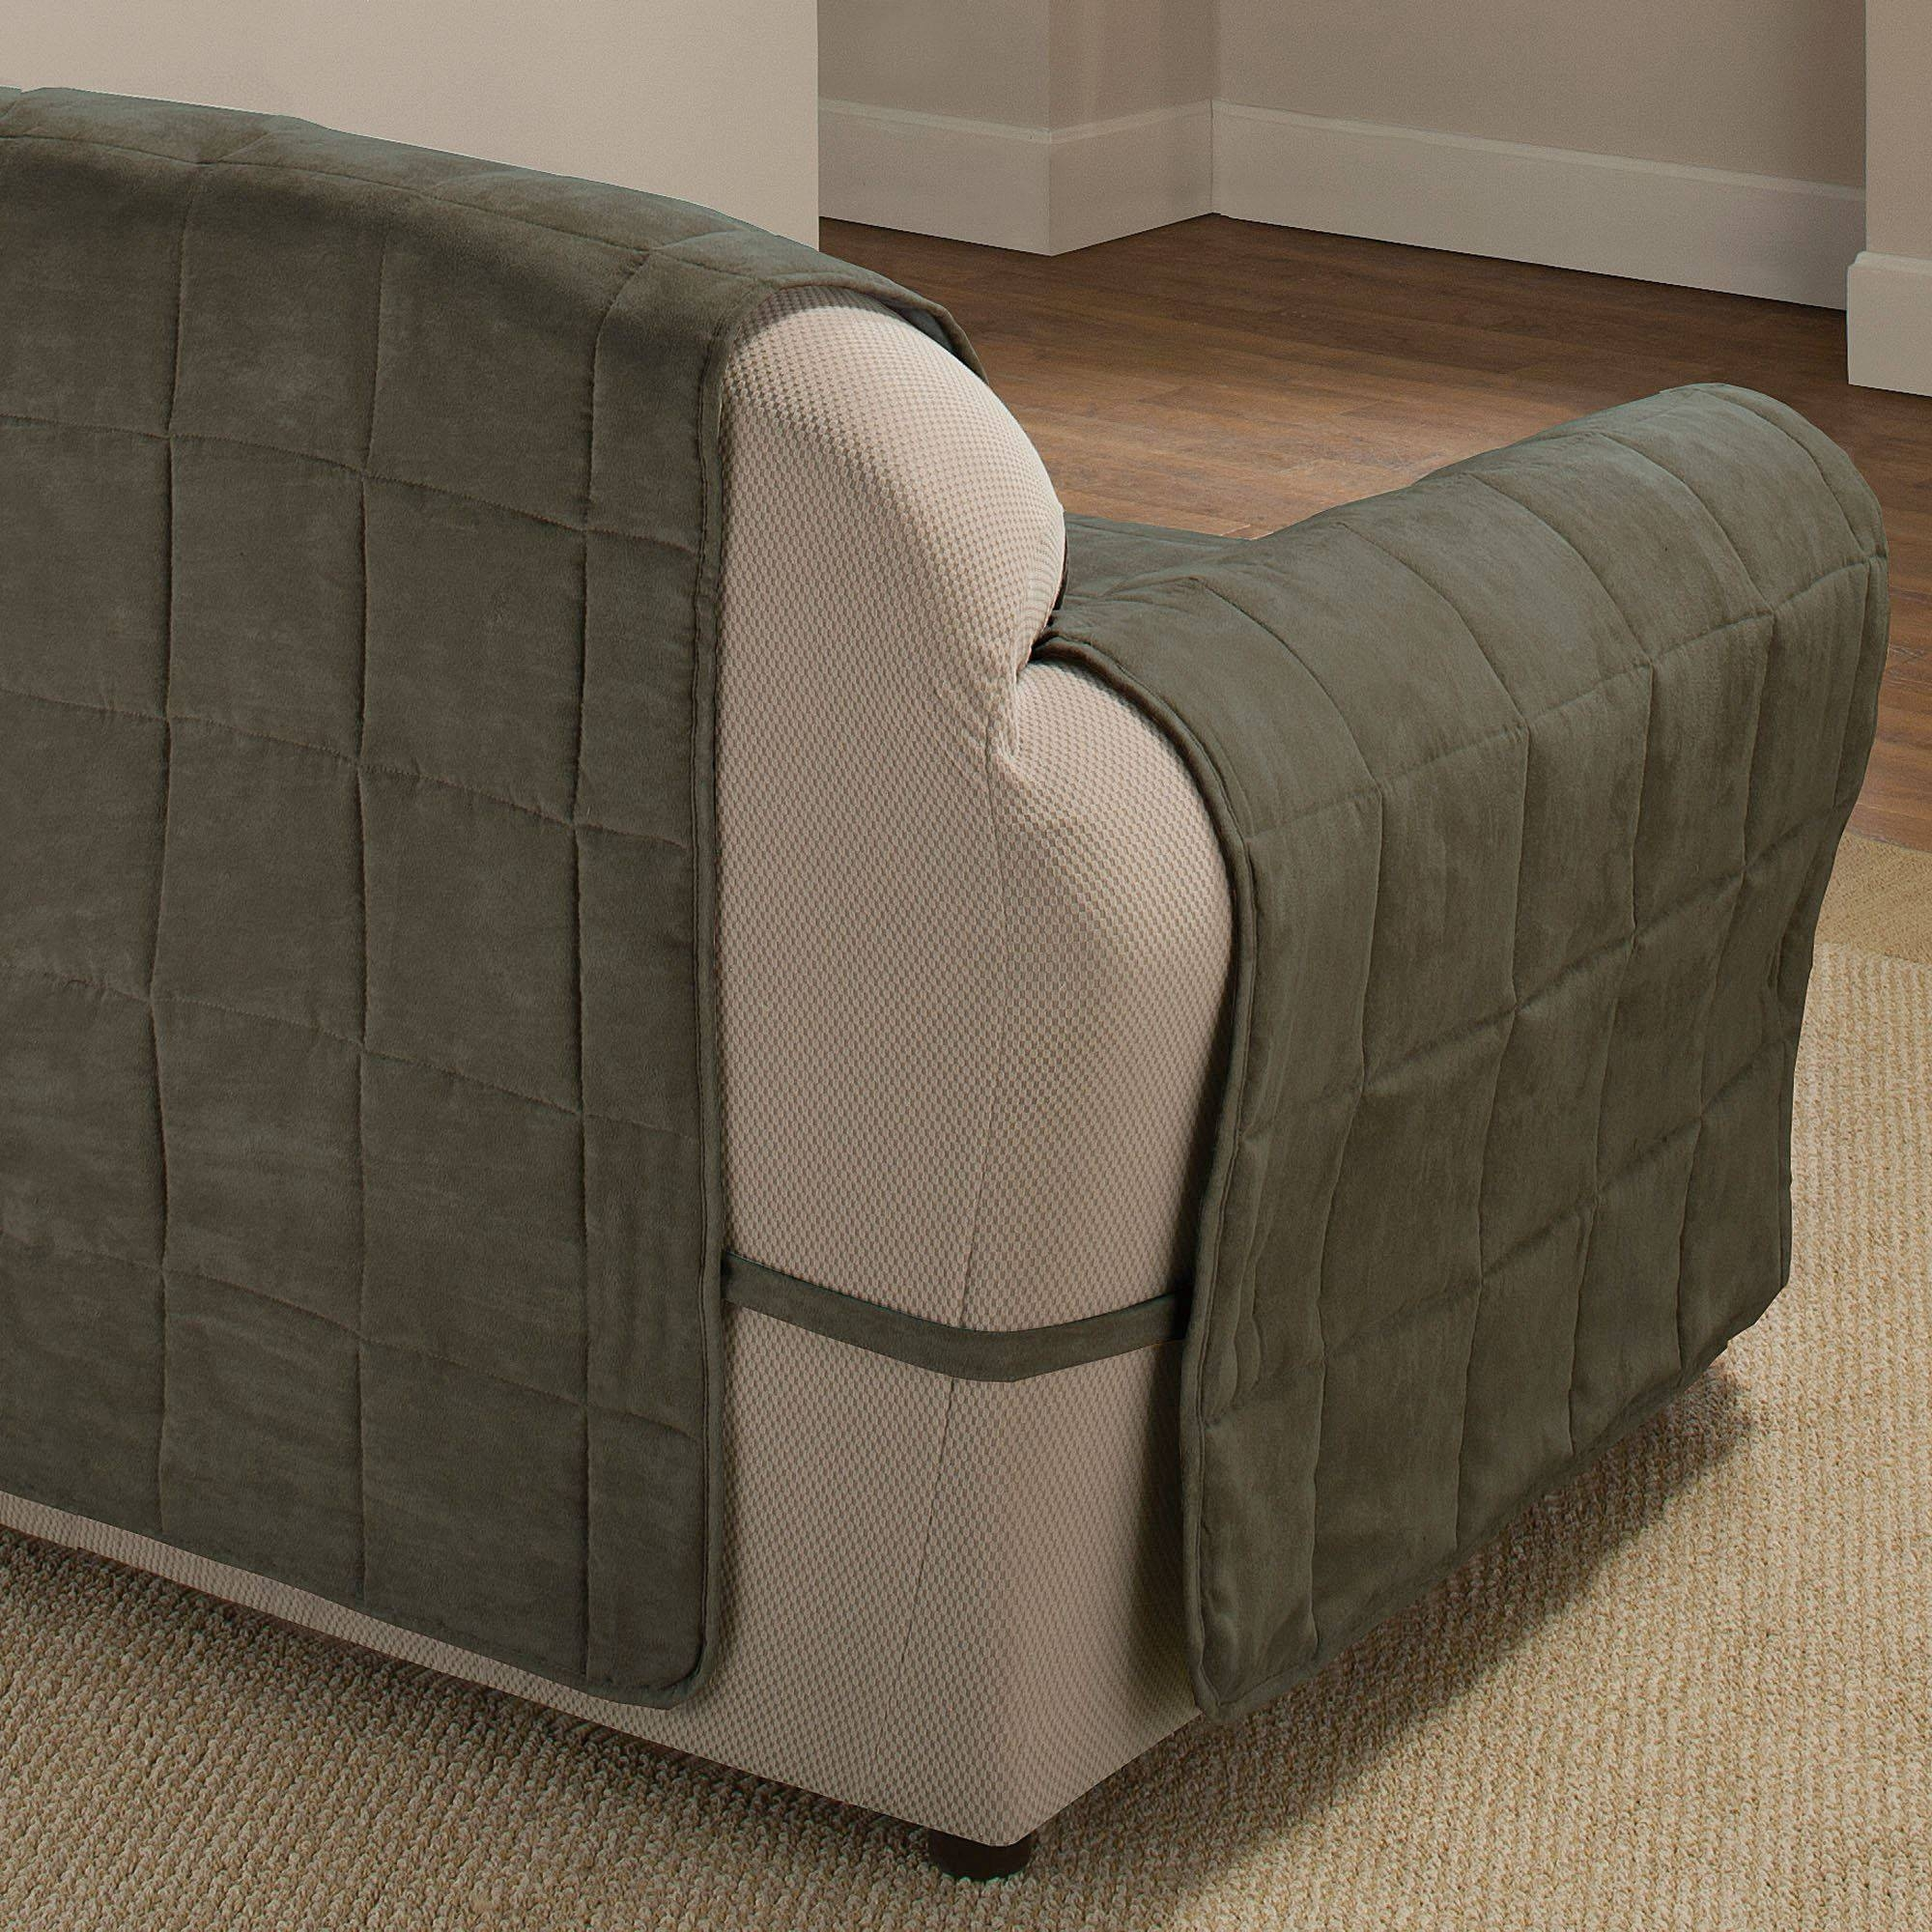 Ultimate Pet Furniture Protectors With Straps inside Pet Proof Sofa Covers (Image 13 of 15)